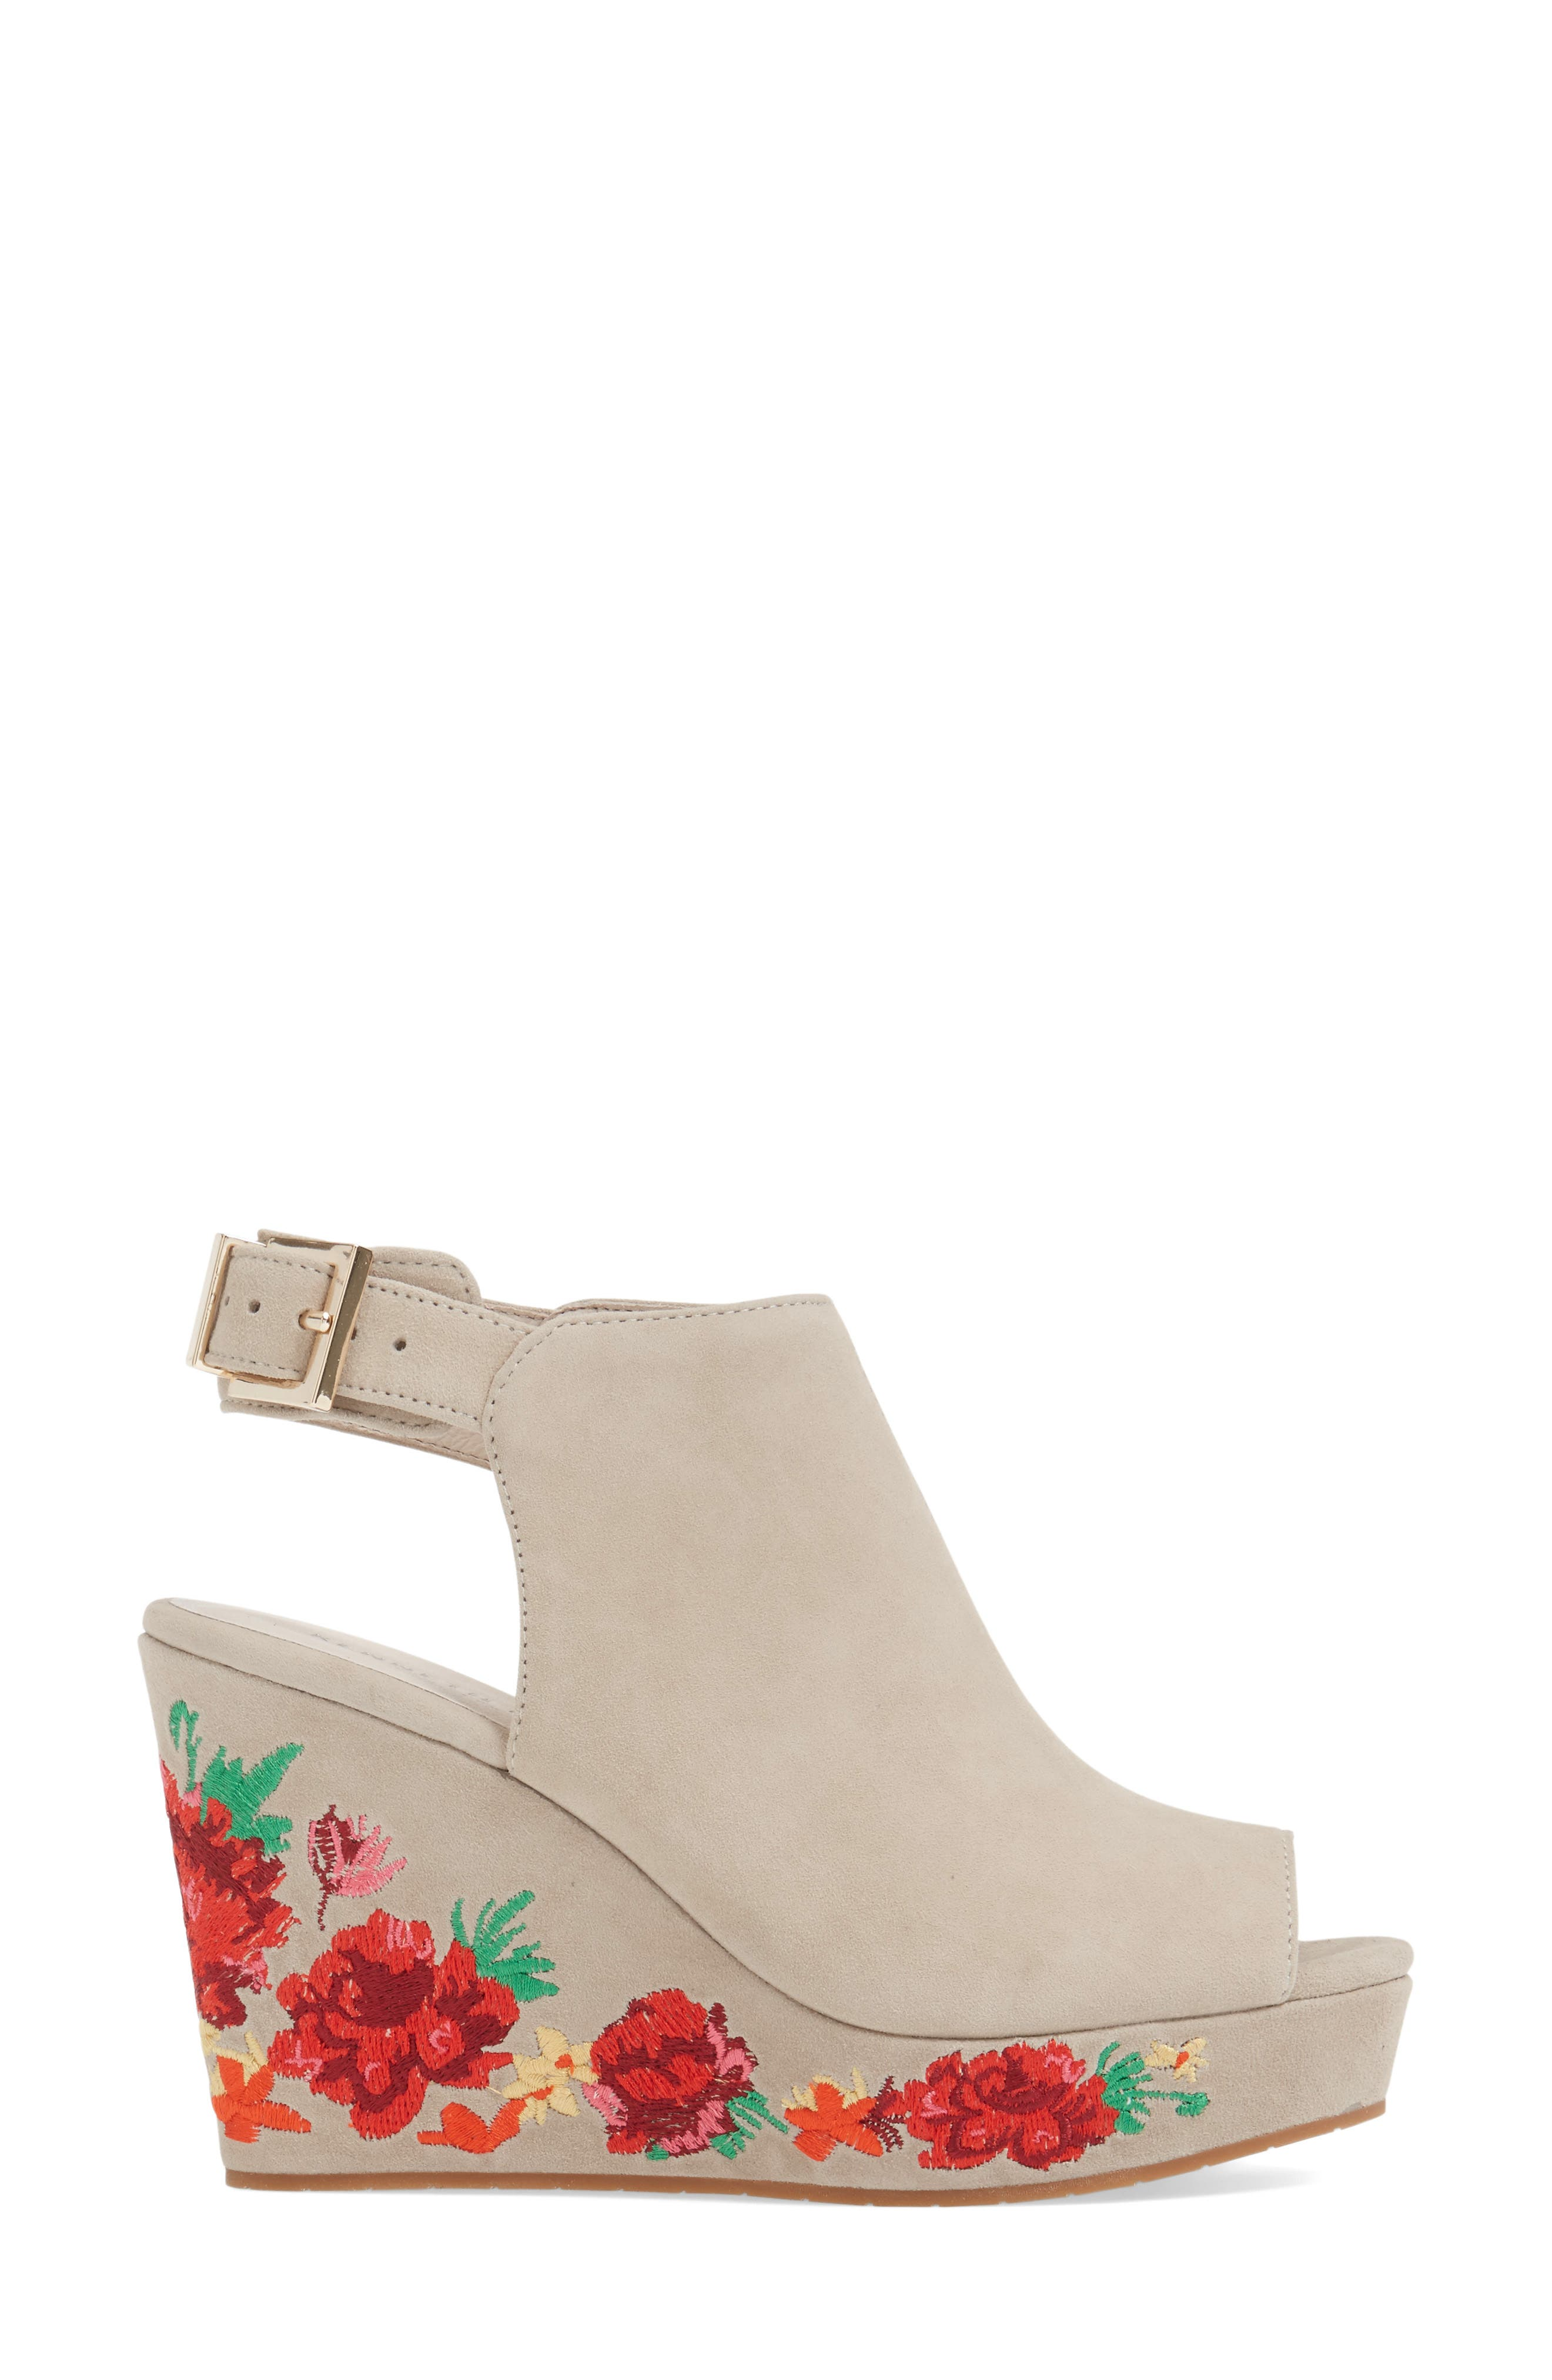 Olani Embroidered Wedge Sandal,                             Alternate thumbnail 3, color,                             Taupe Suede